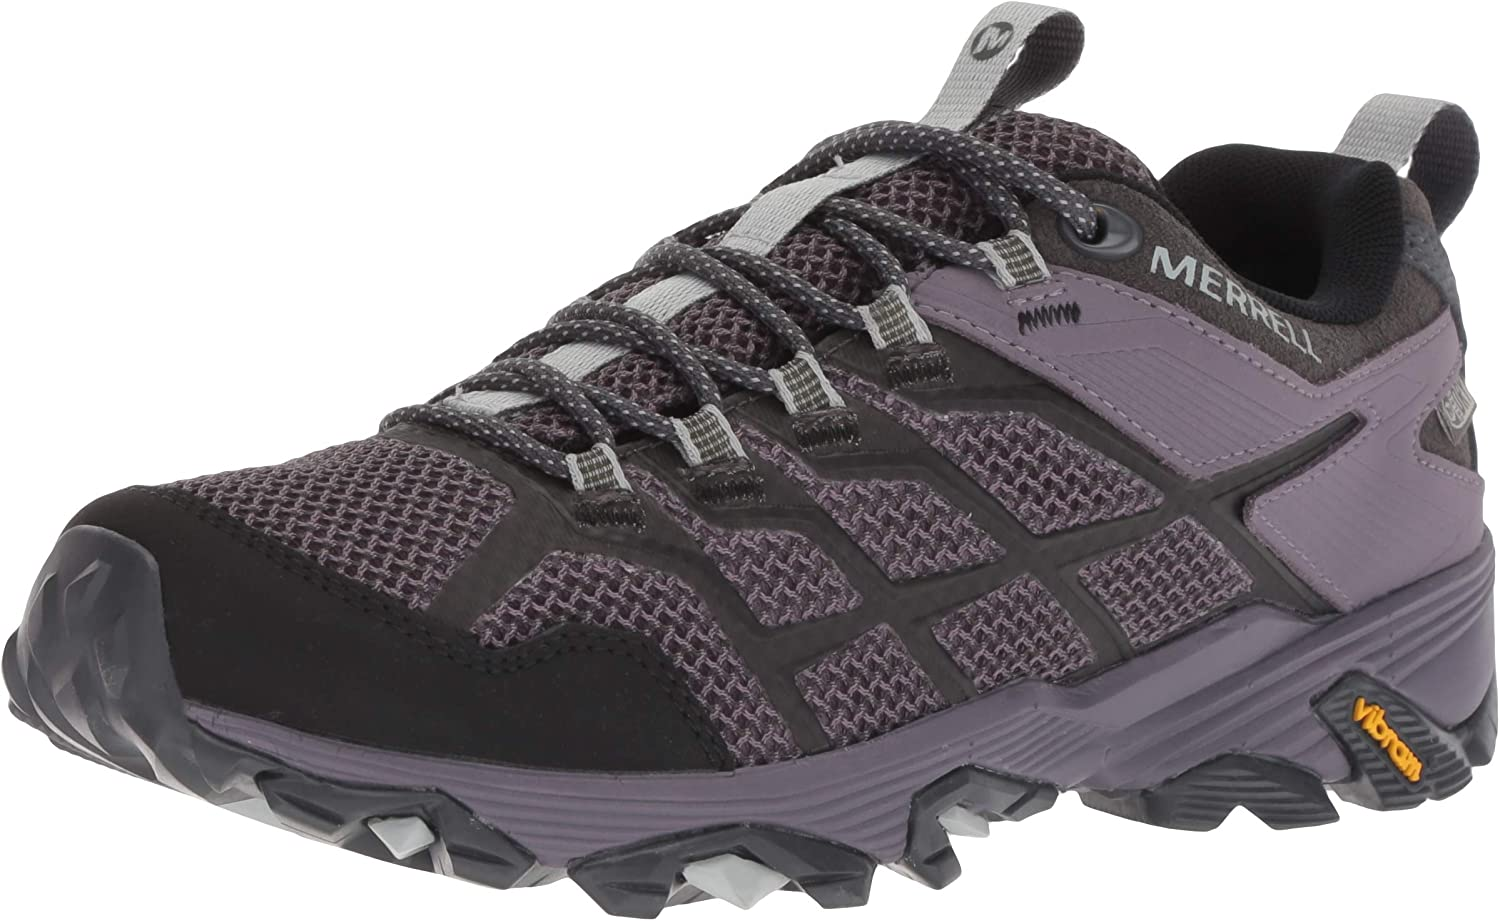 Mountain Warehouse McLeod Womens Hiking Boots – Ladies Walking Shoes